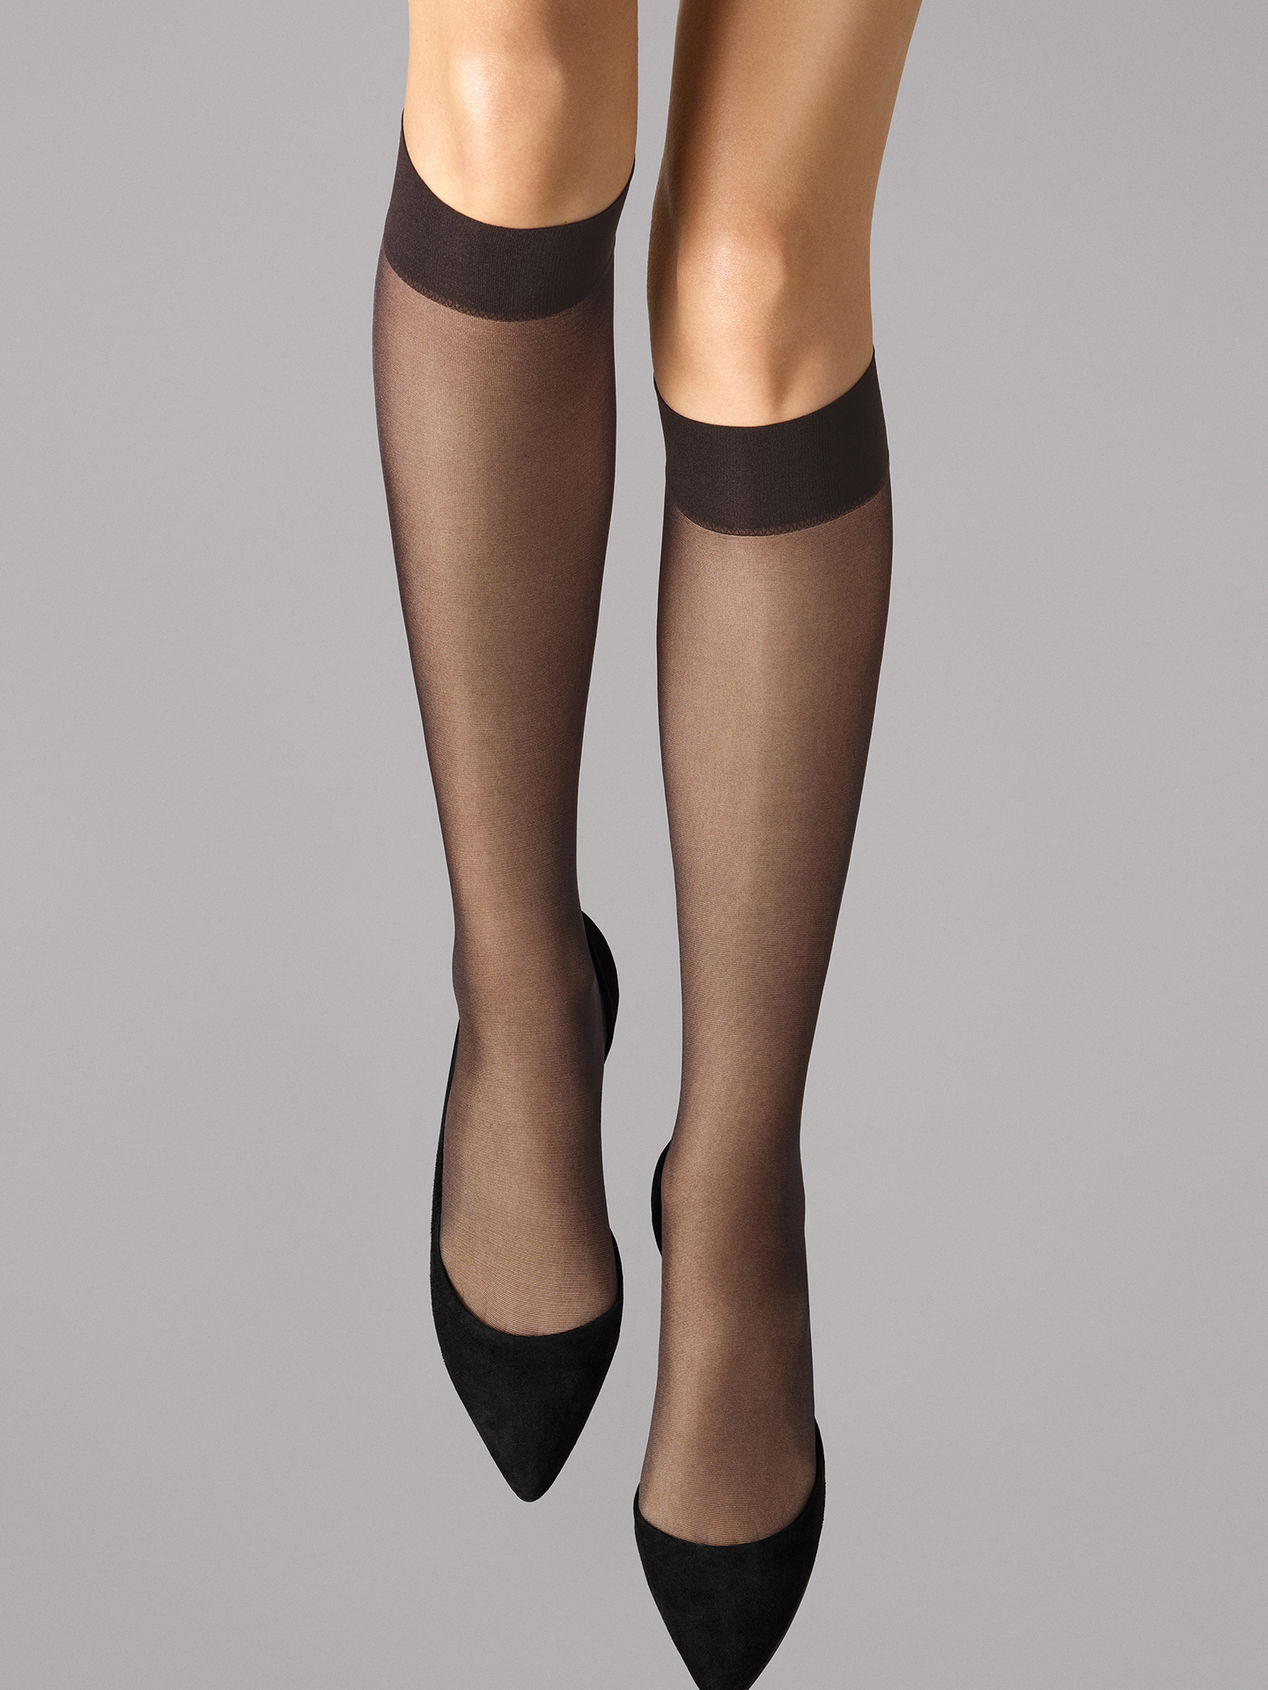 Wolford Satin Touch 20 Knee-Highs, nearly black, small